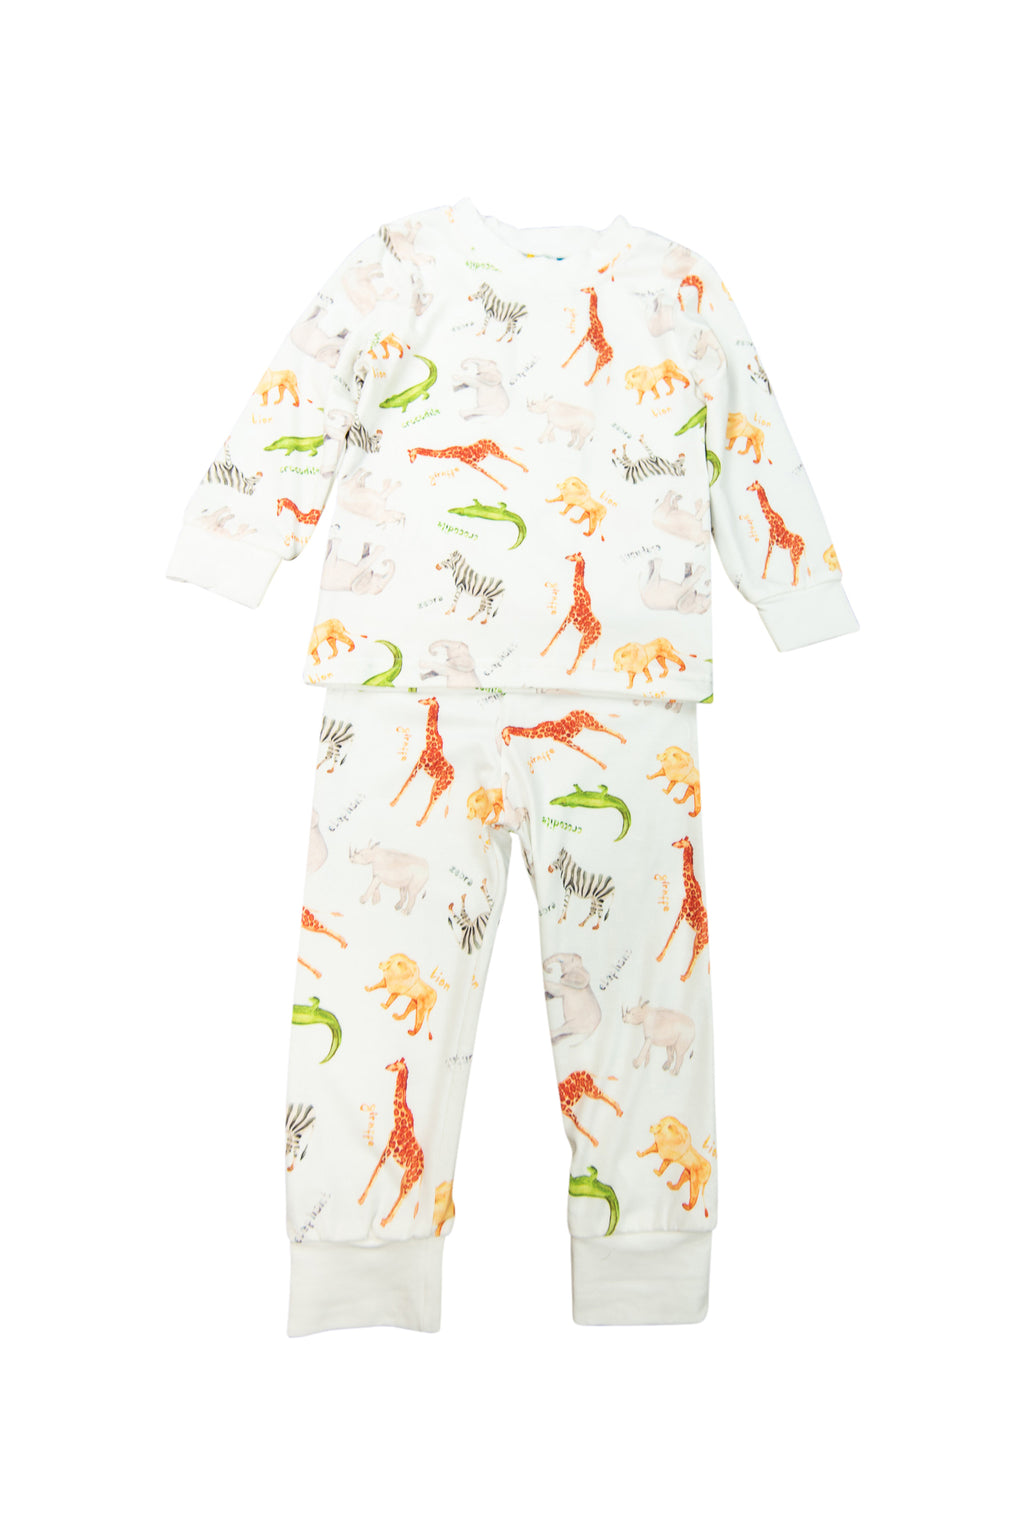 Boys Zoo Pj Pant Set